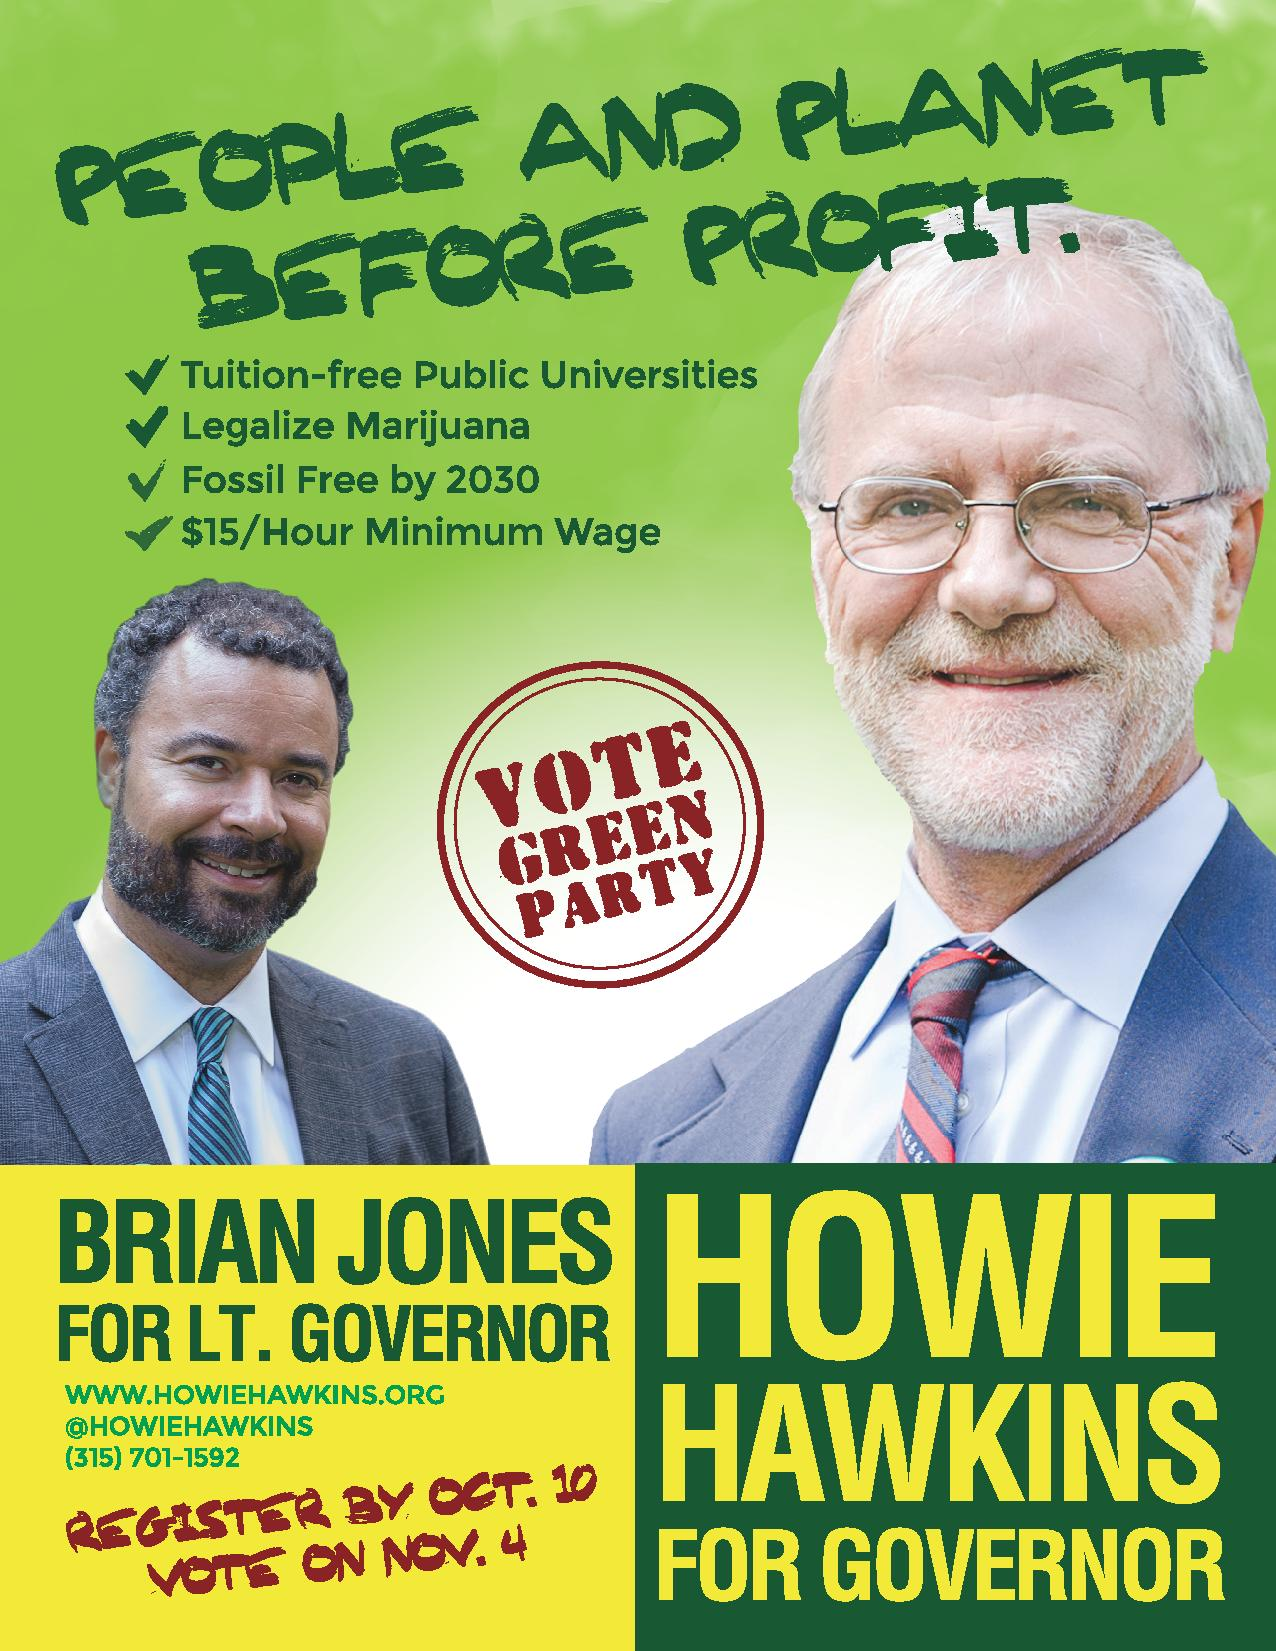 Vote Green Party for NY Governor